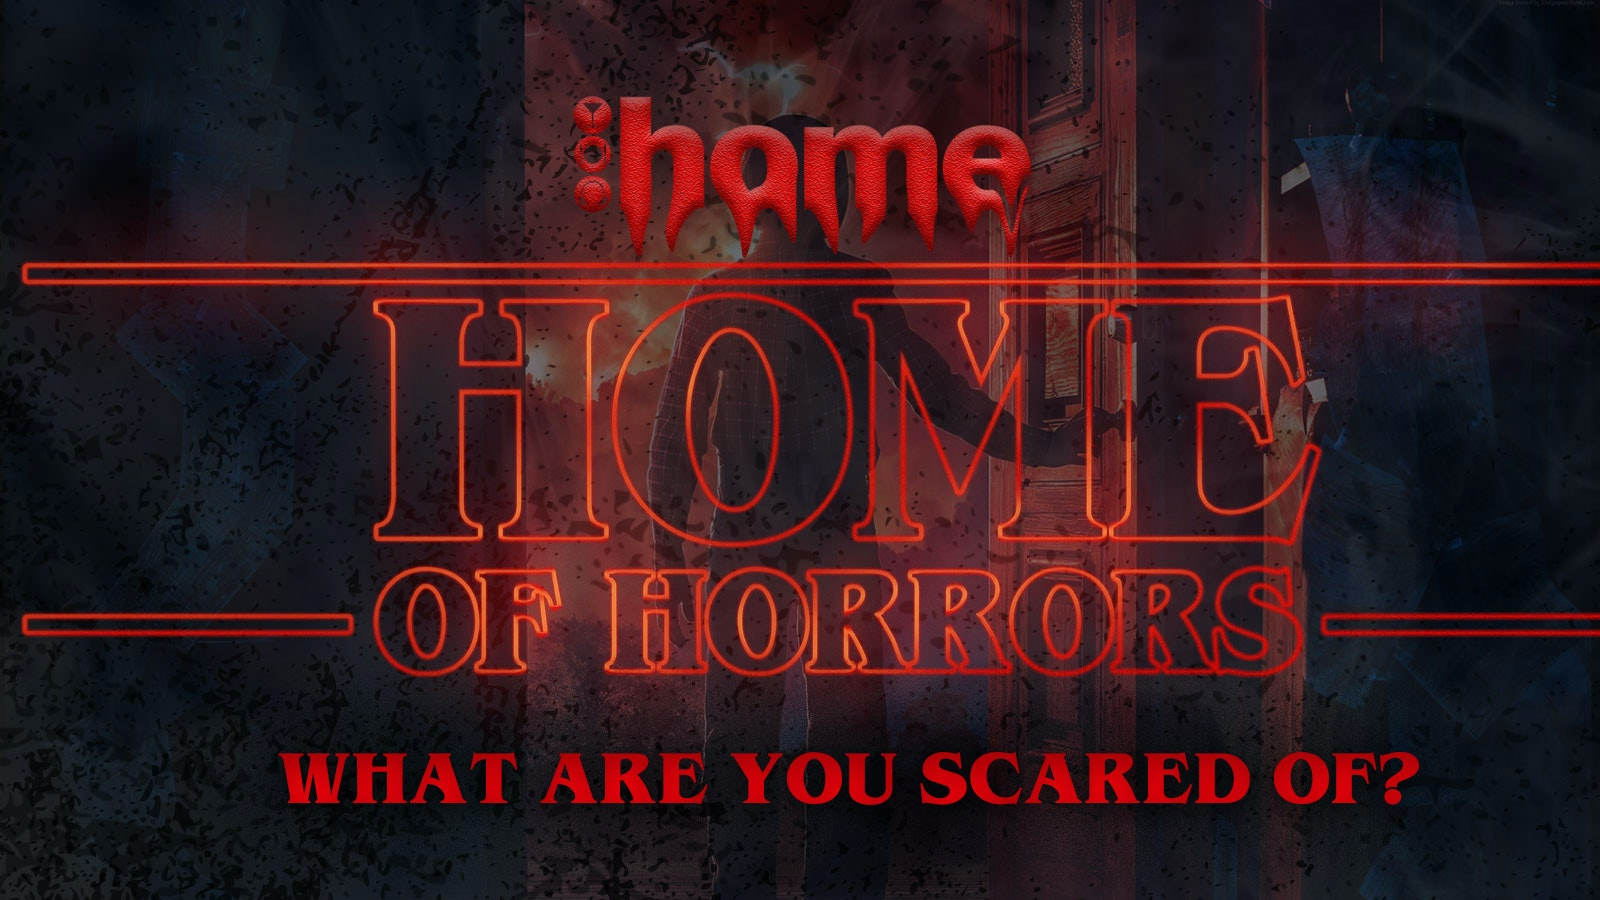 Home Lincoln Halloween 2019 | Home Of Horrors Friday